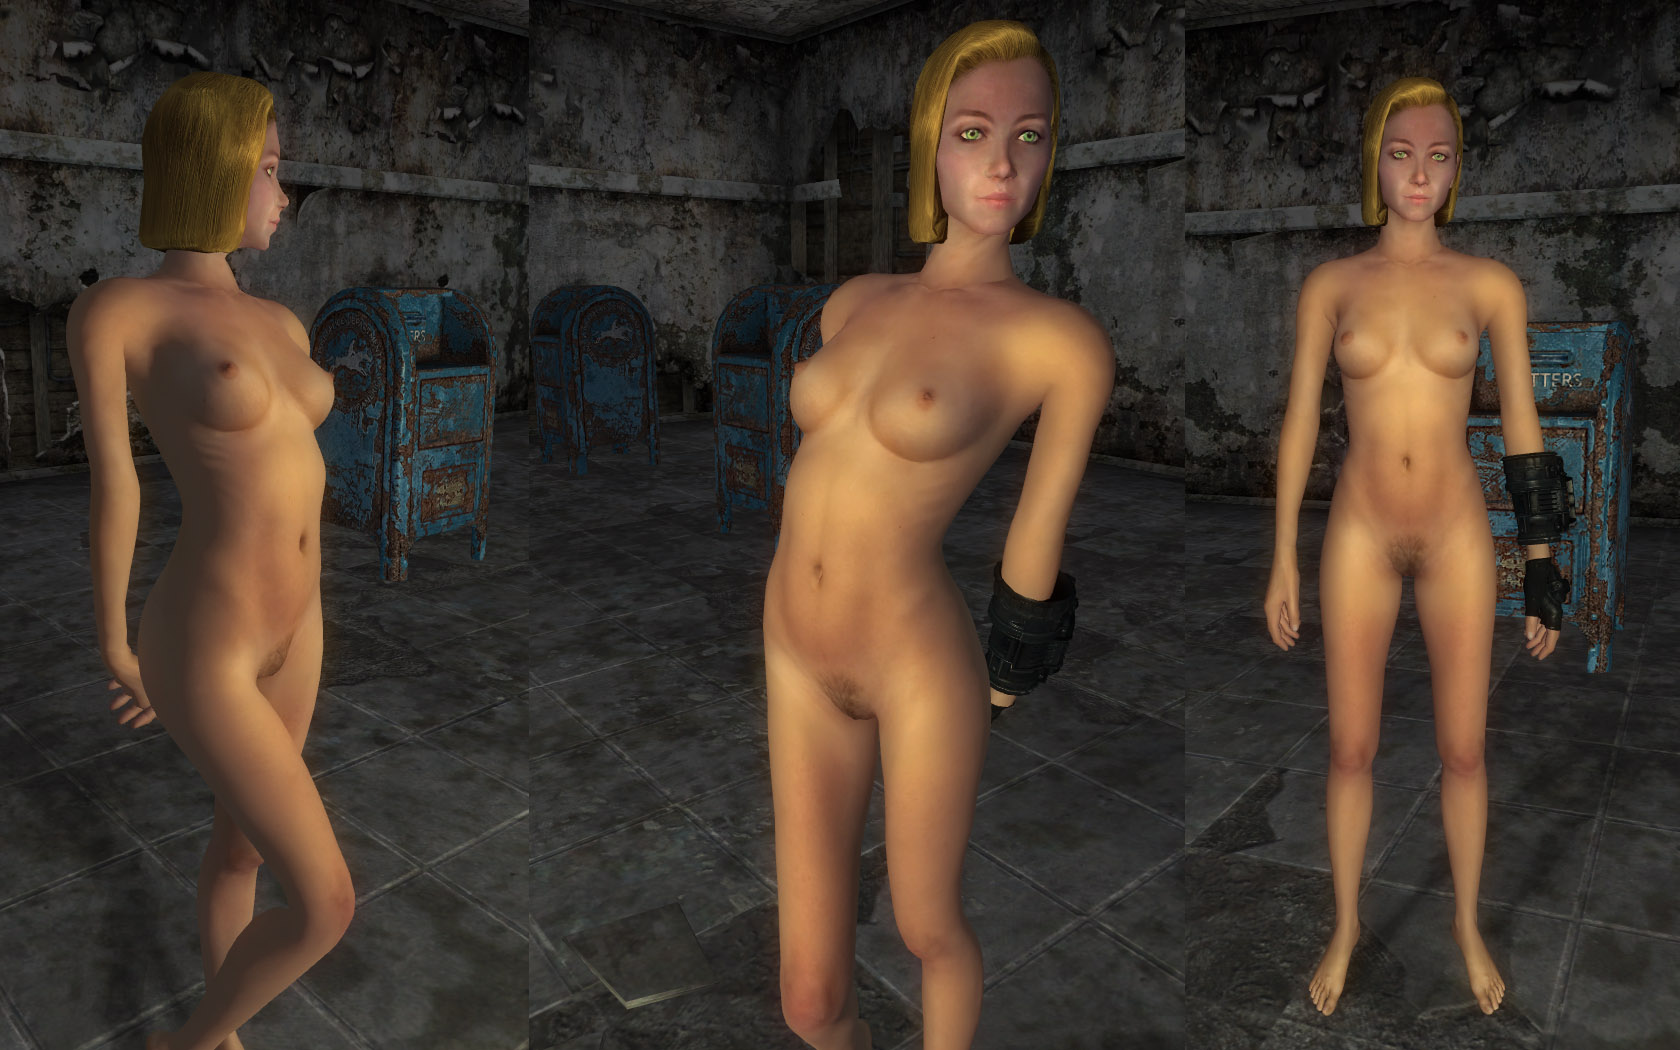 Fallout nude skin adult clips